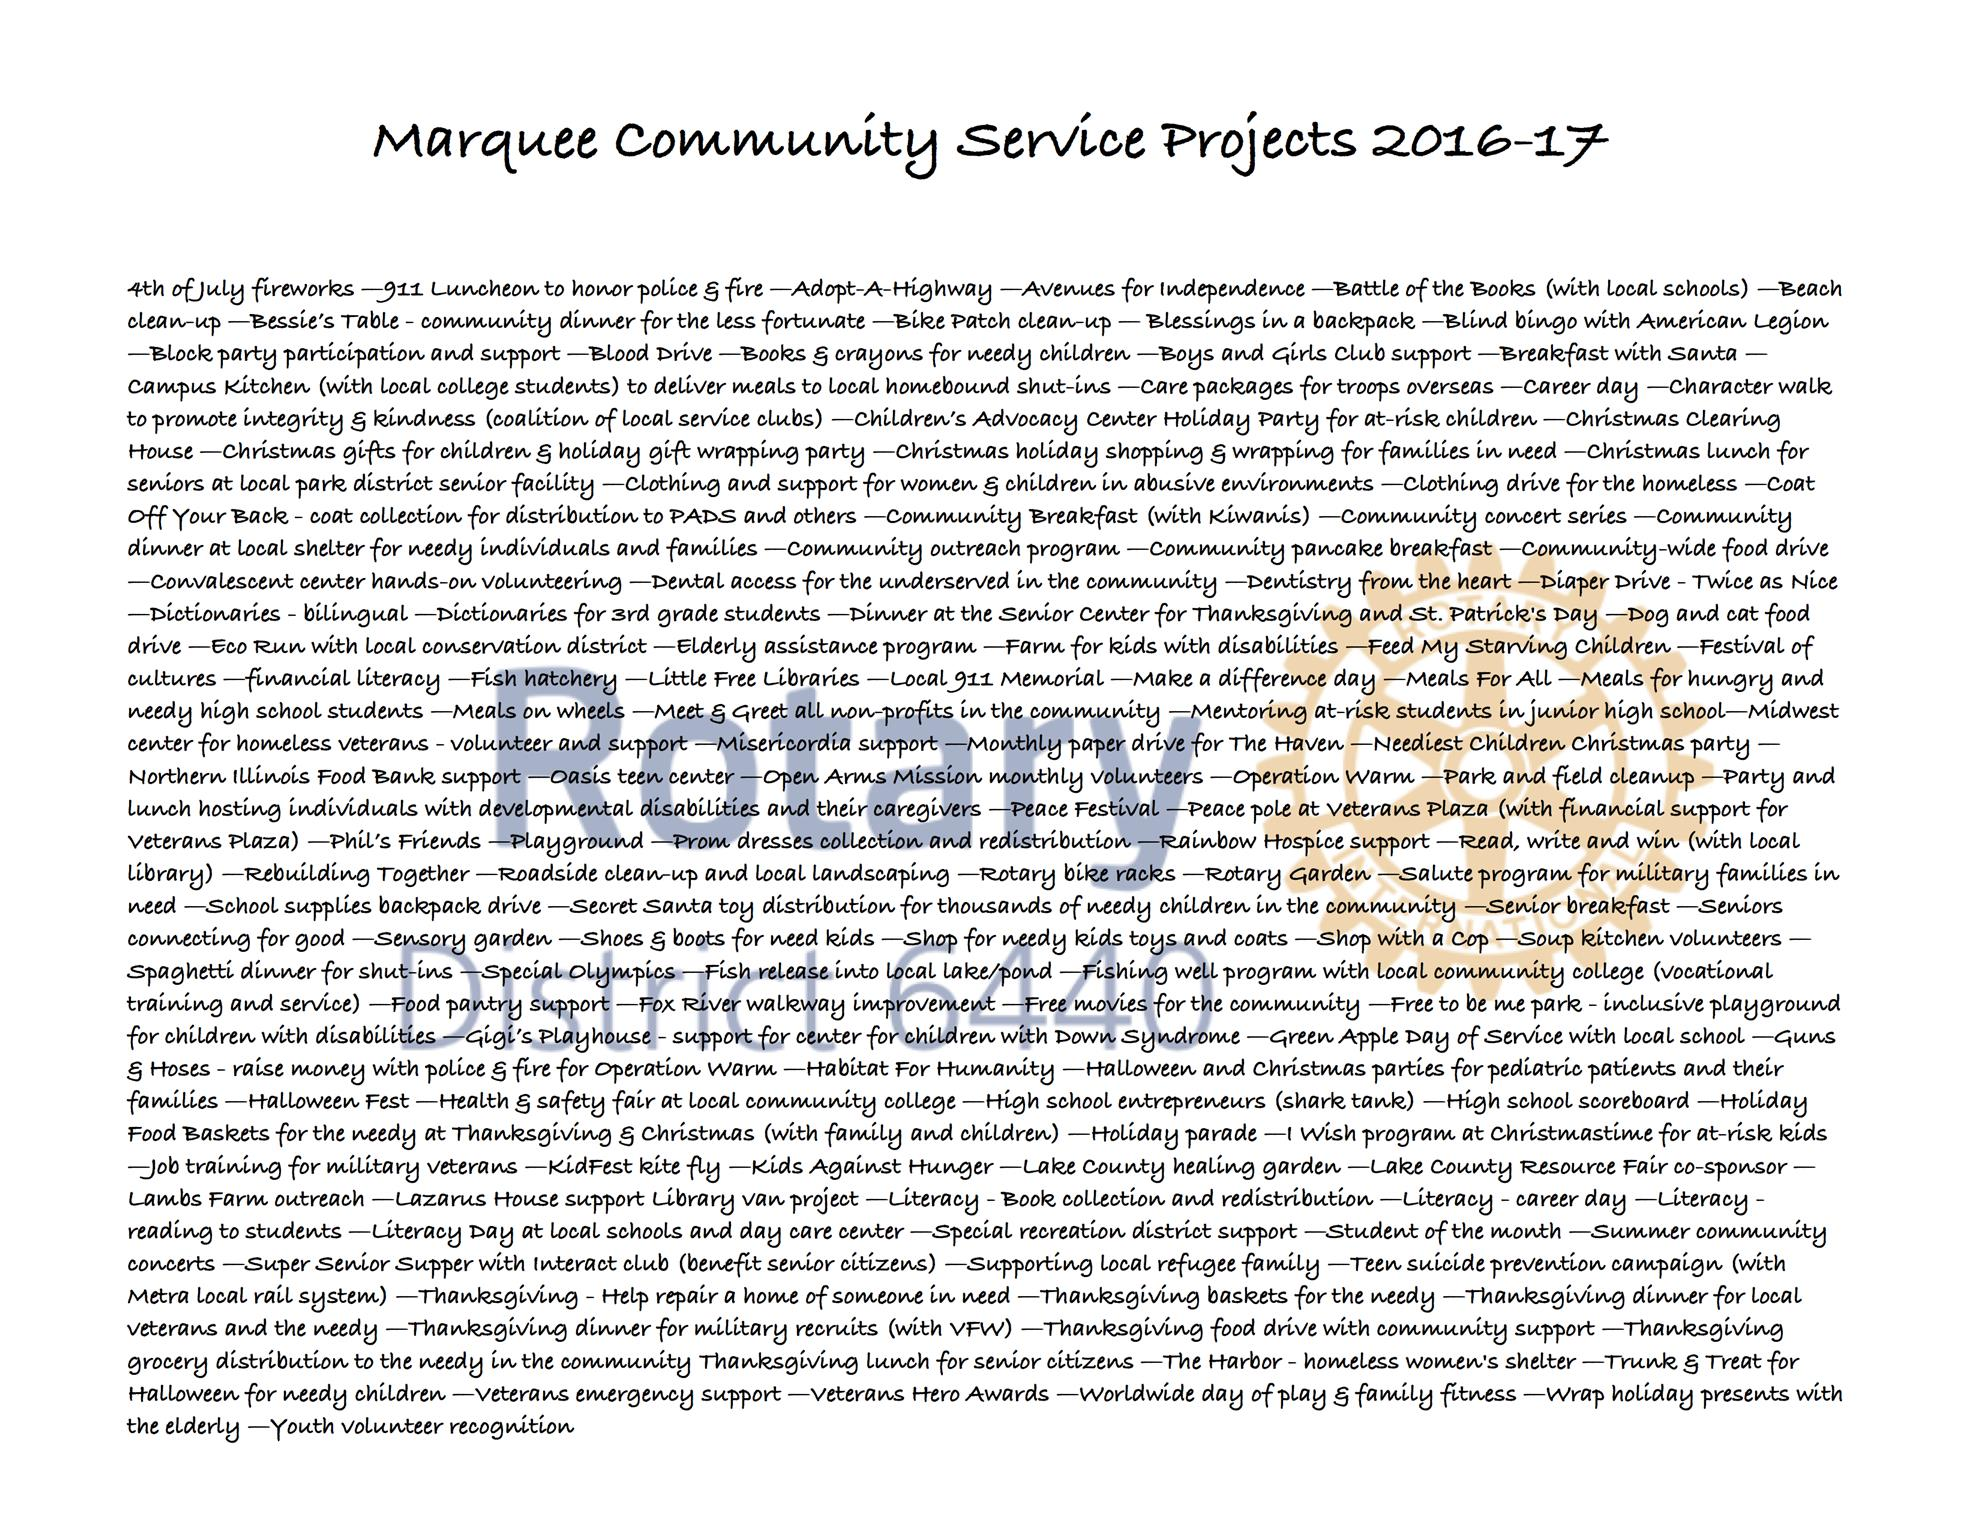 community service overview rotary district 6440 rh rotary6440 org Rotary Club Service Rotary Club Service